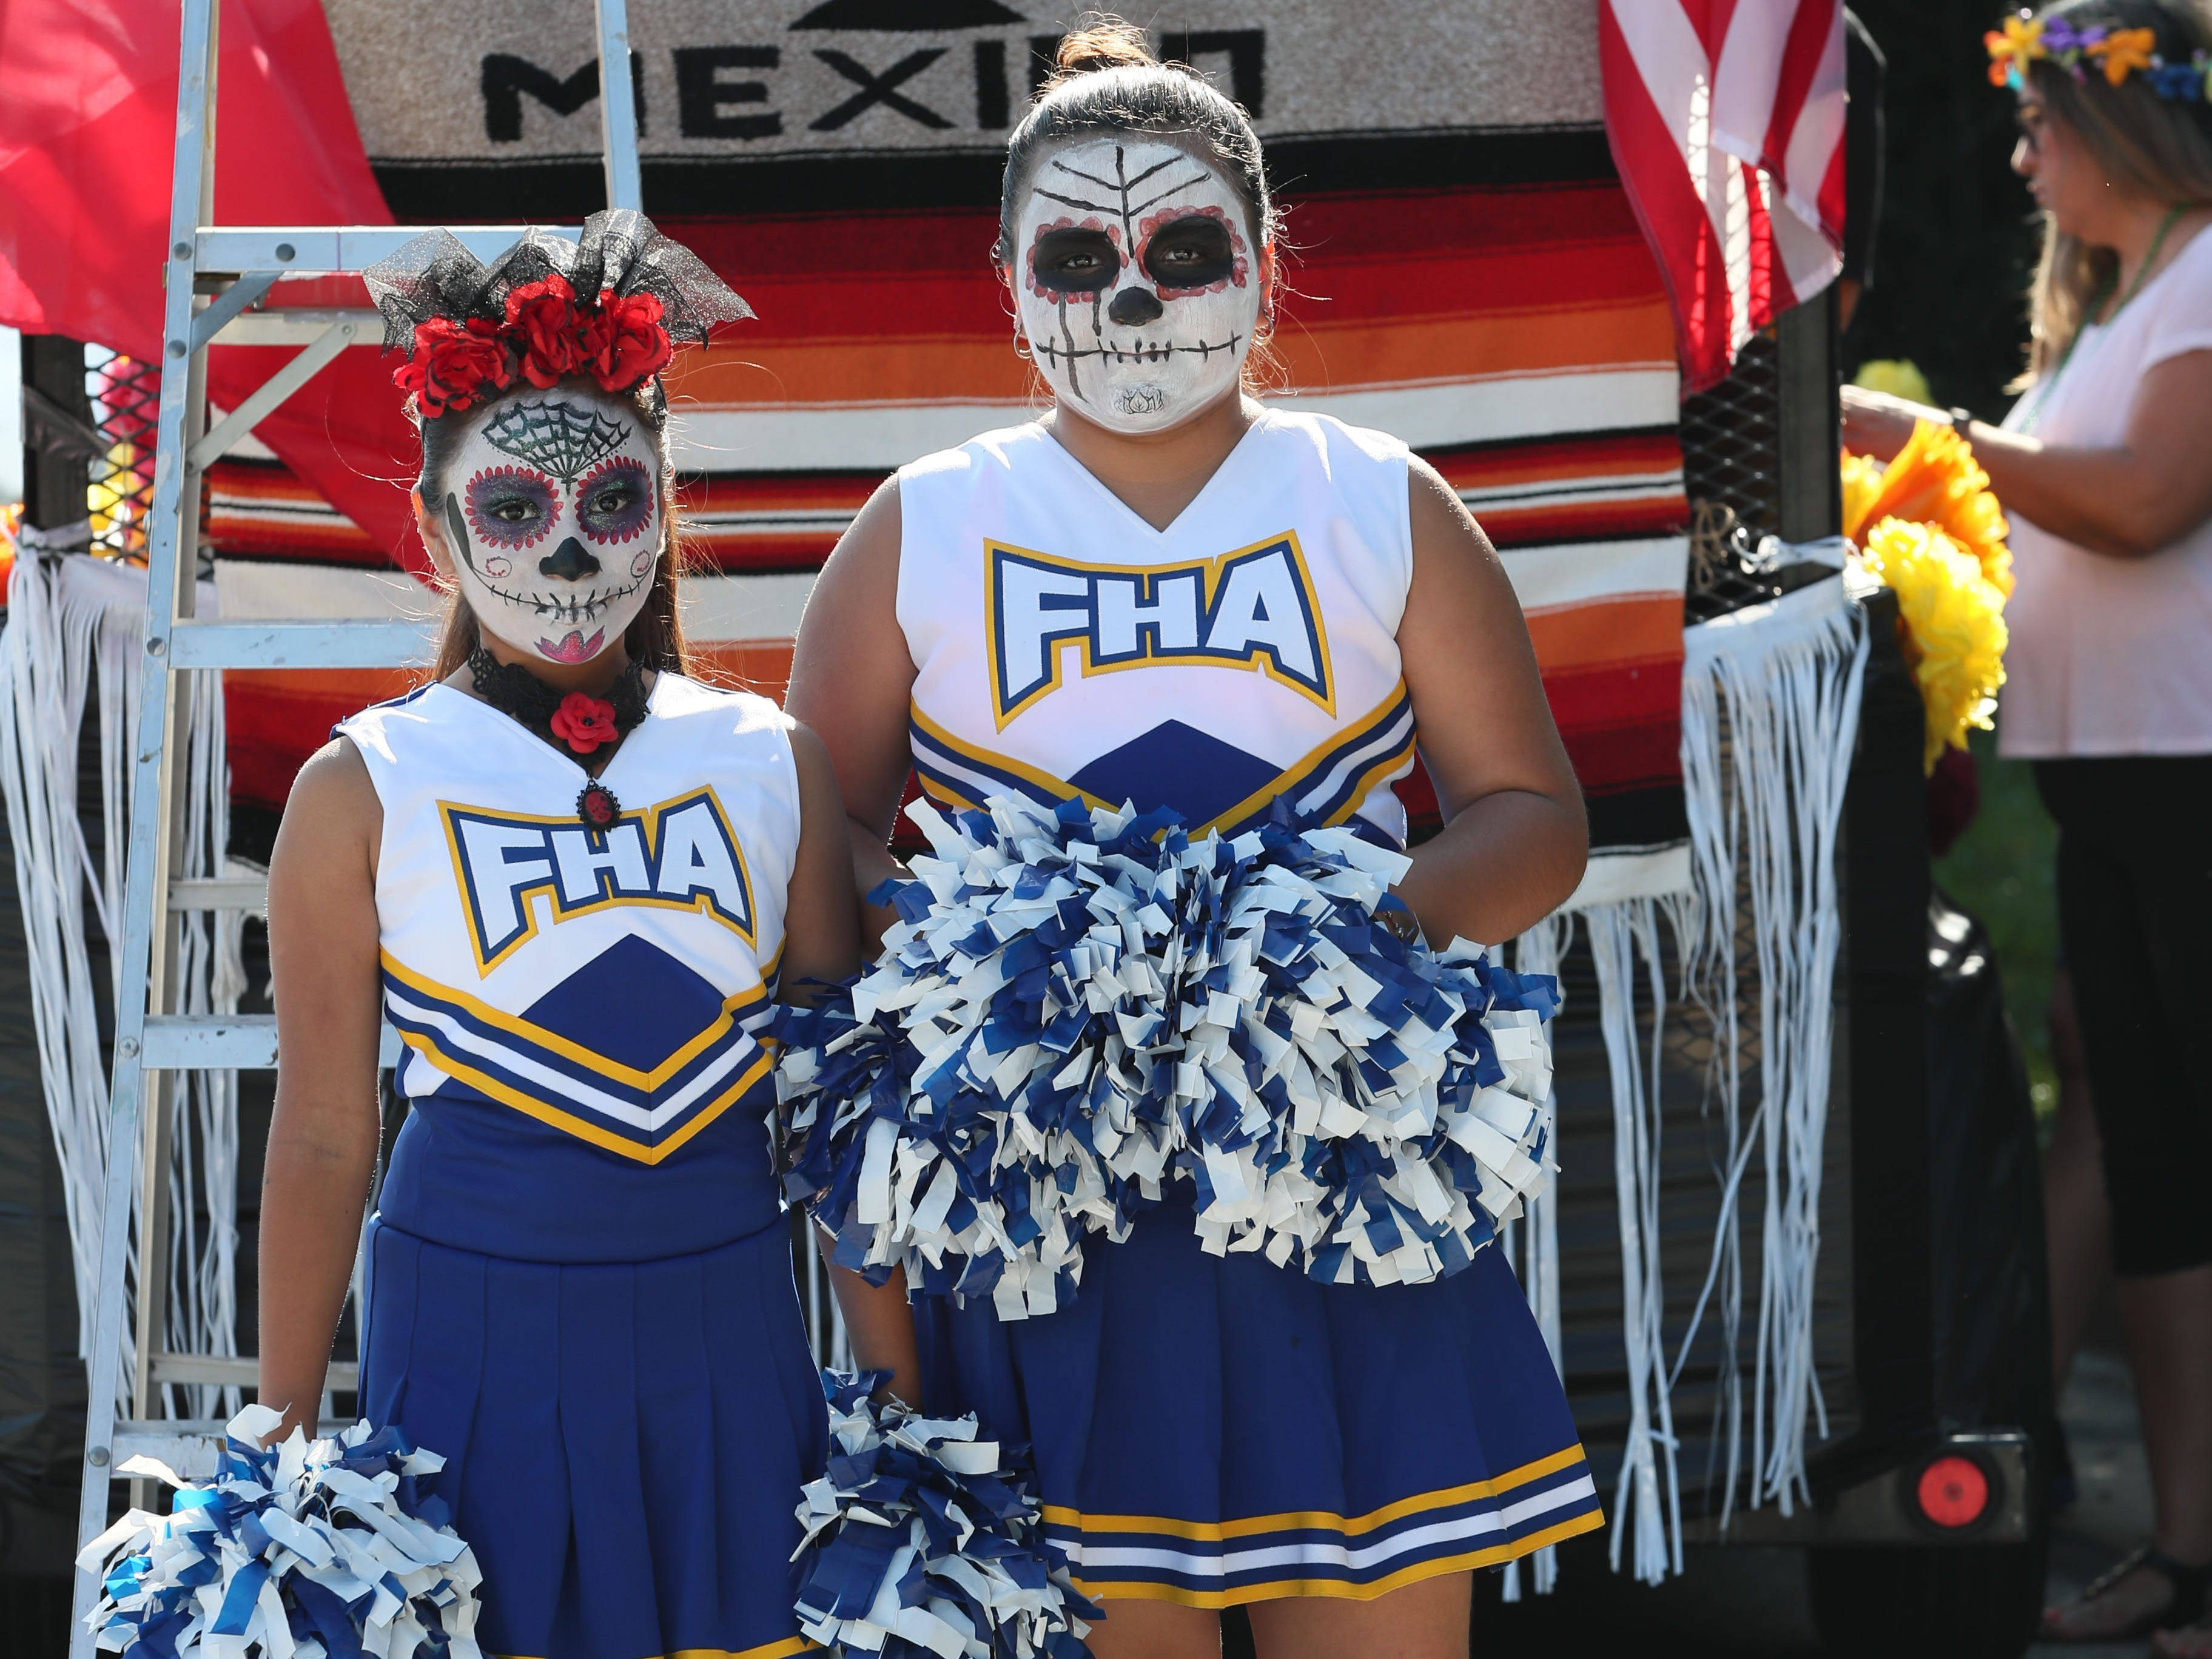 Jocelyn Rivera (left) and Alessandra Berumen, both 10, from Forest Home Avenue School's pompom squad prepare to march in the parade.  Their makeup recalls the Day of the Dead Mexican holiday.